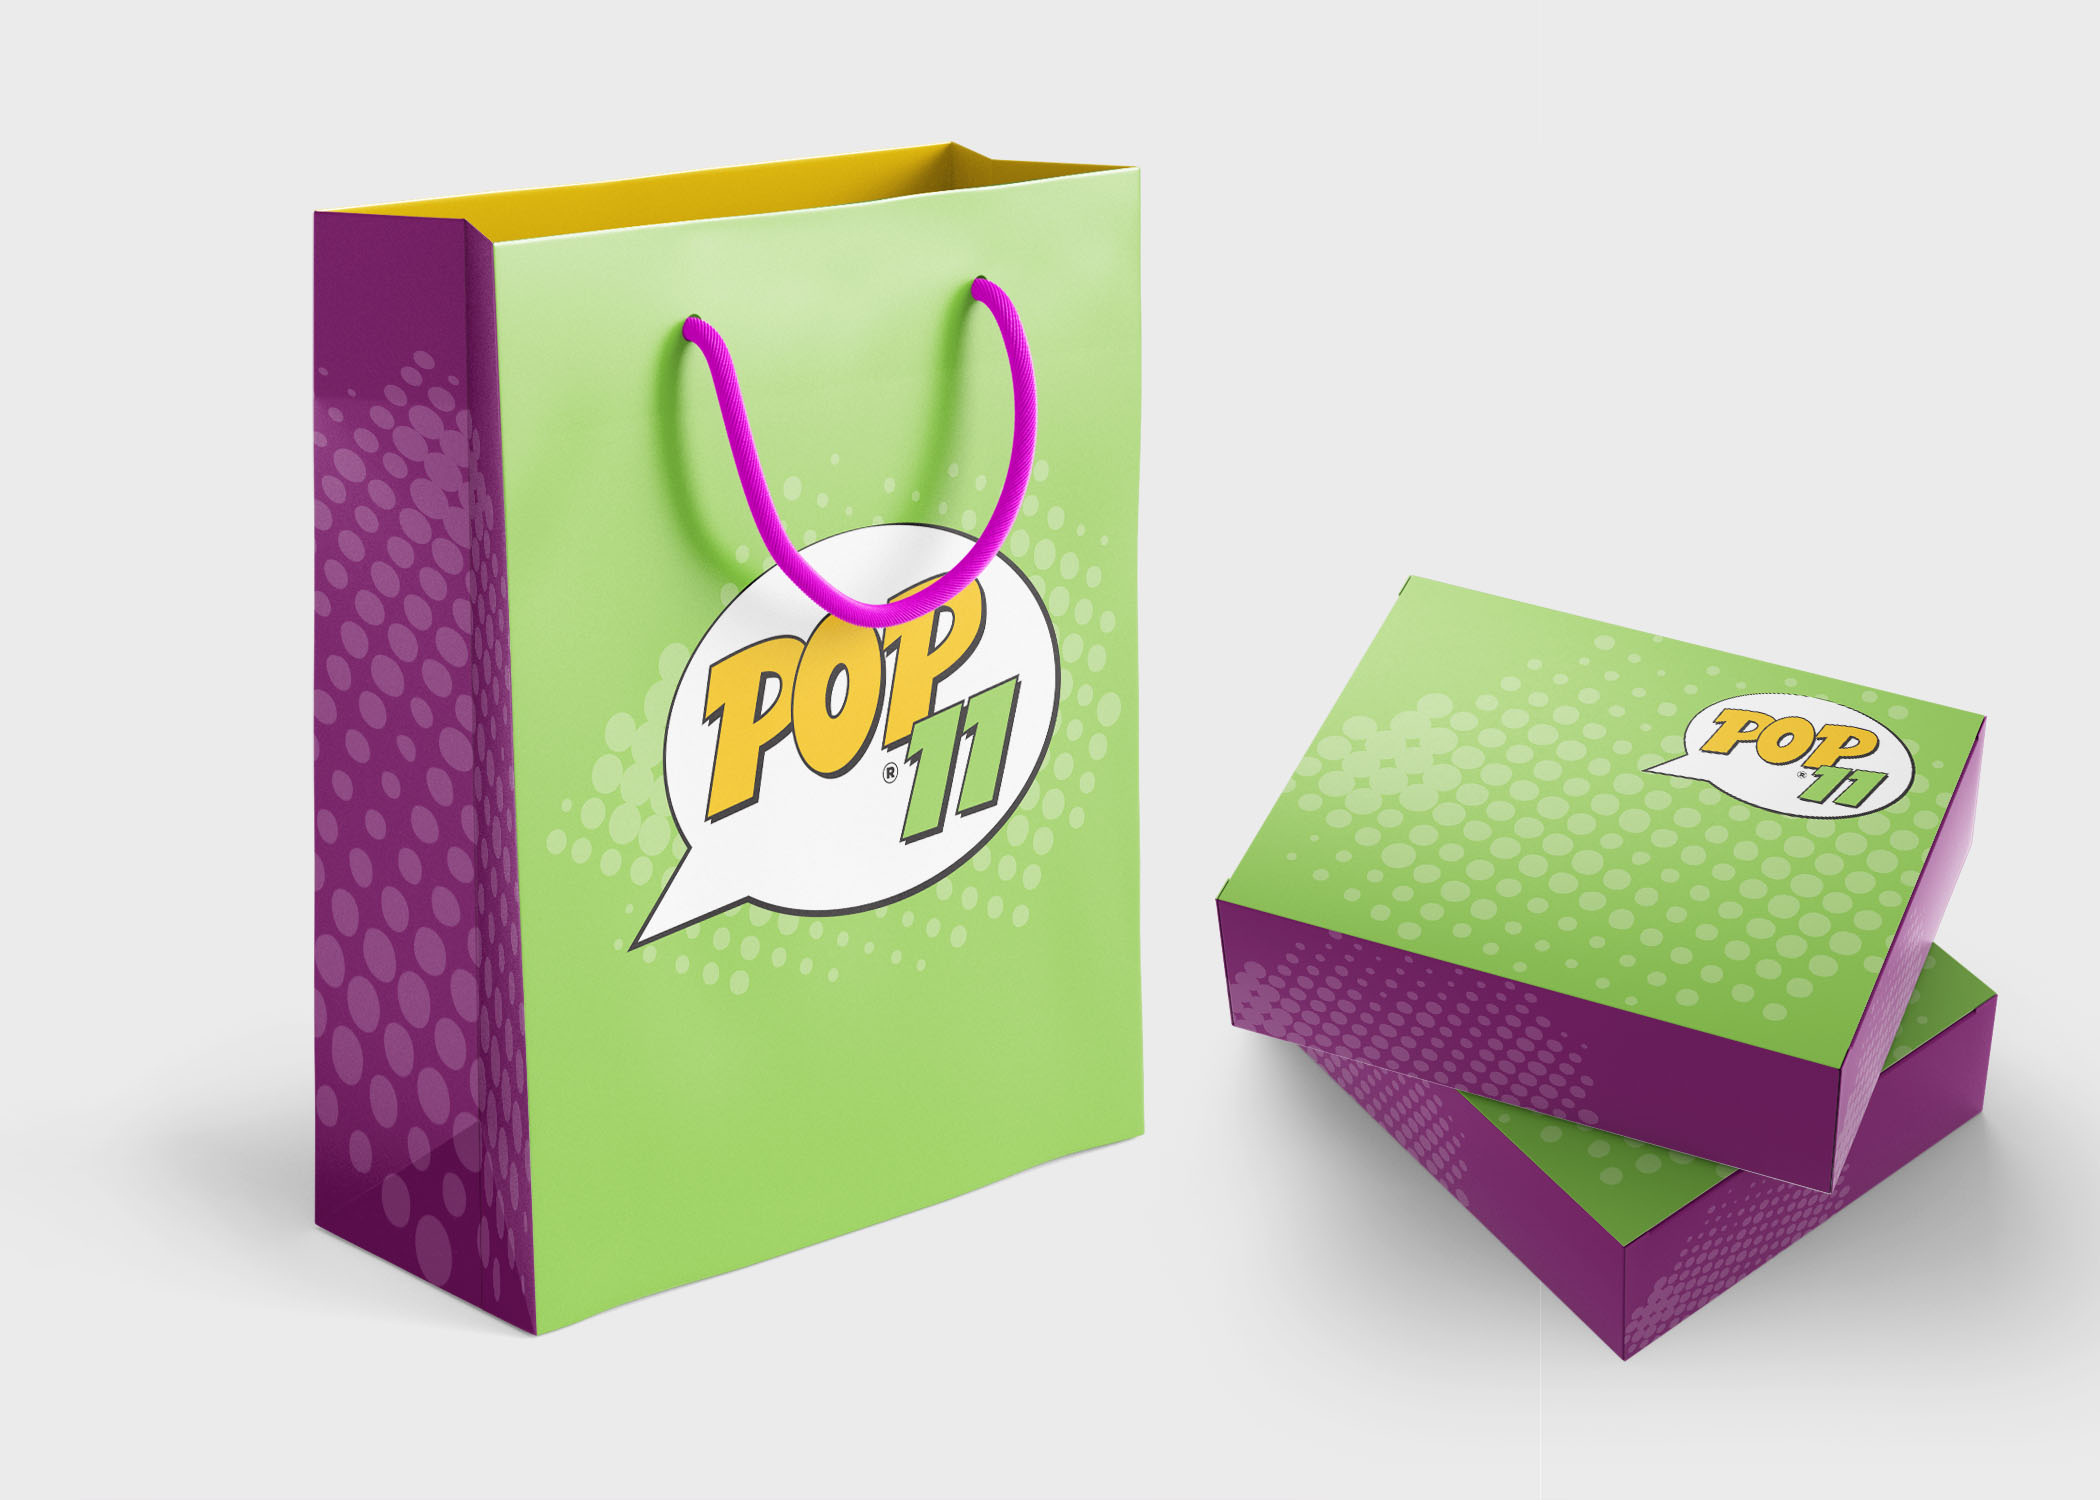 01 Bag Box Packaging Pop11 Digital Prints